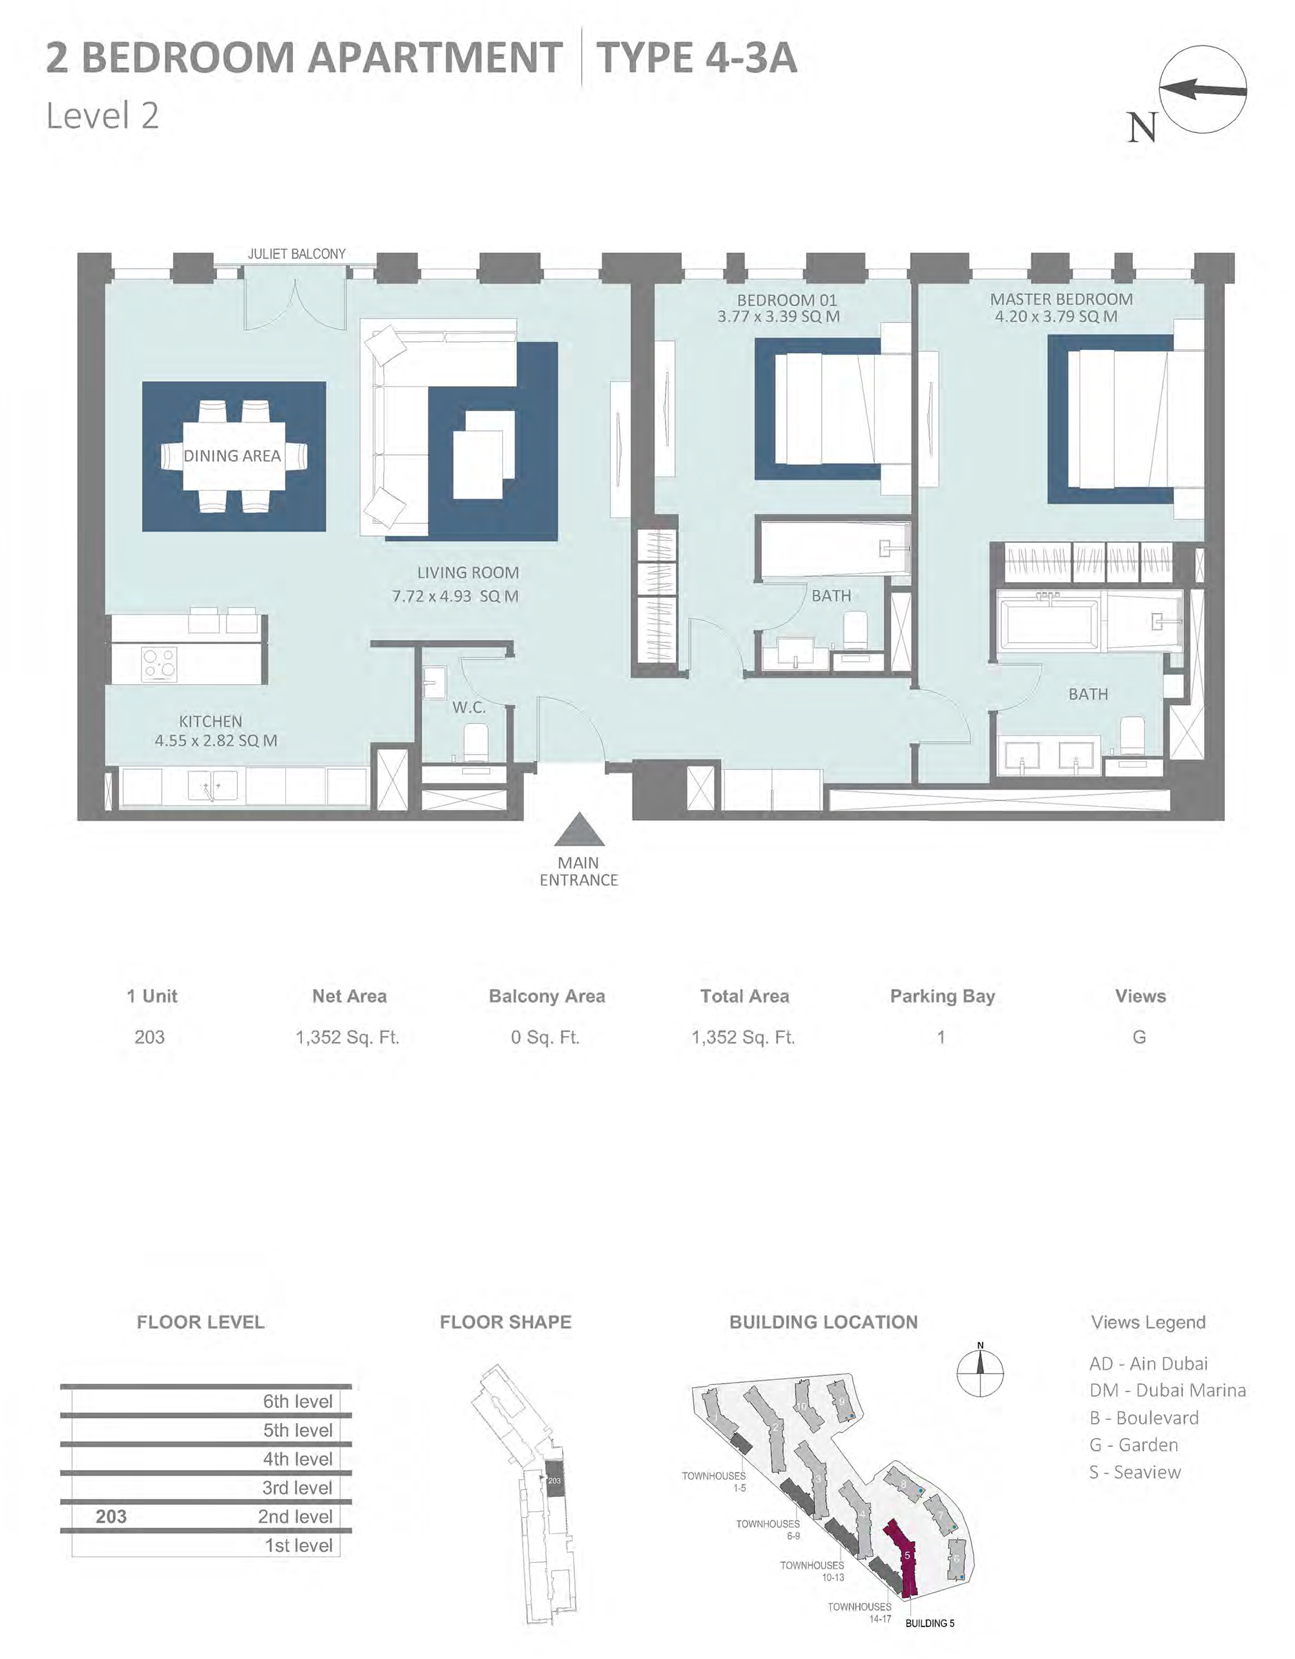 Building 5 - 2 Bedroom Type 4-3A Level 2 , Size 1352    sq. ft.